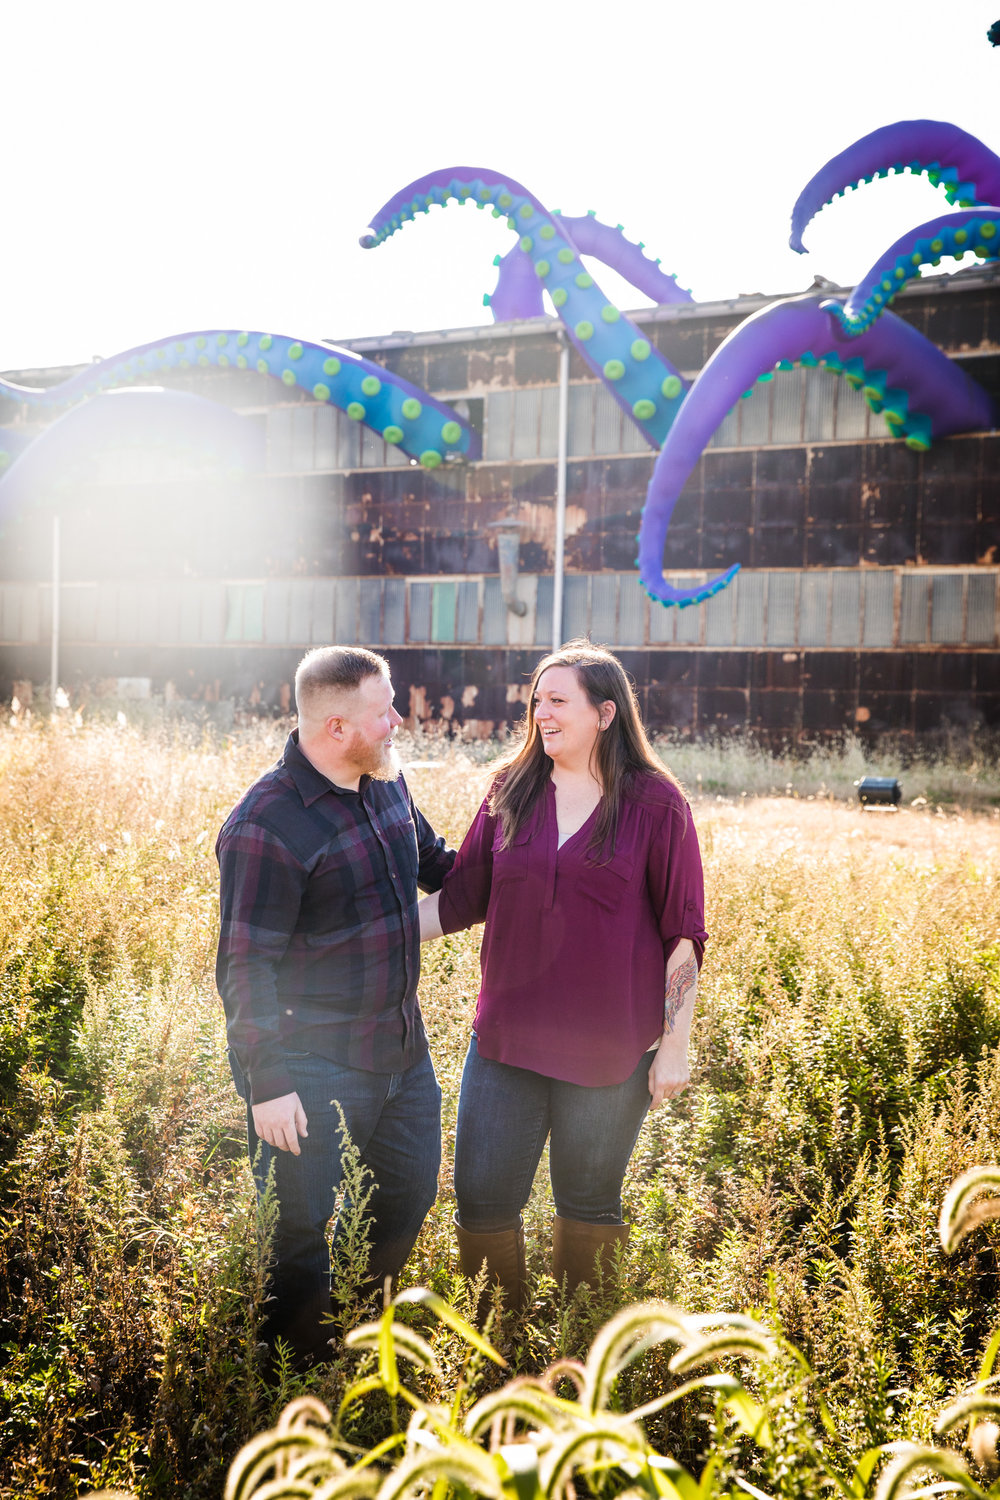 Kristina and Shawn - Navy Yard Engagement Session -004.jpg